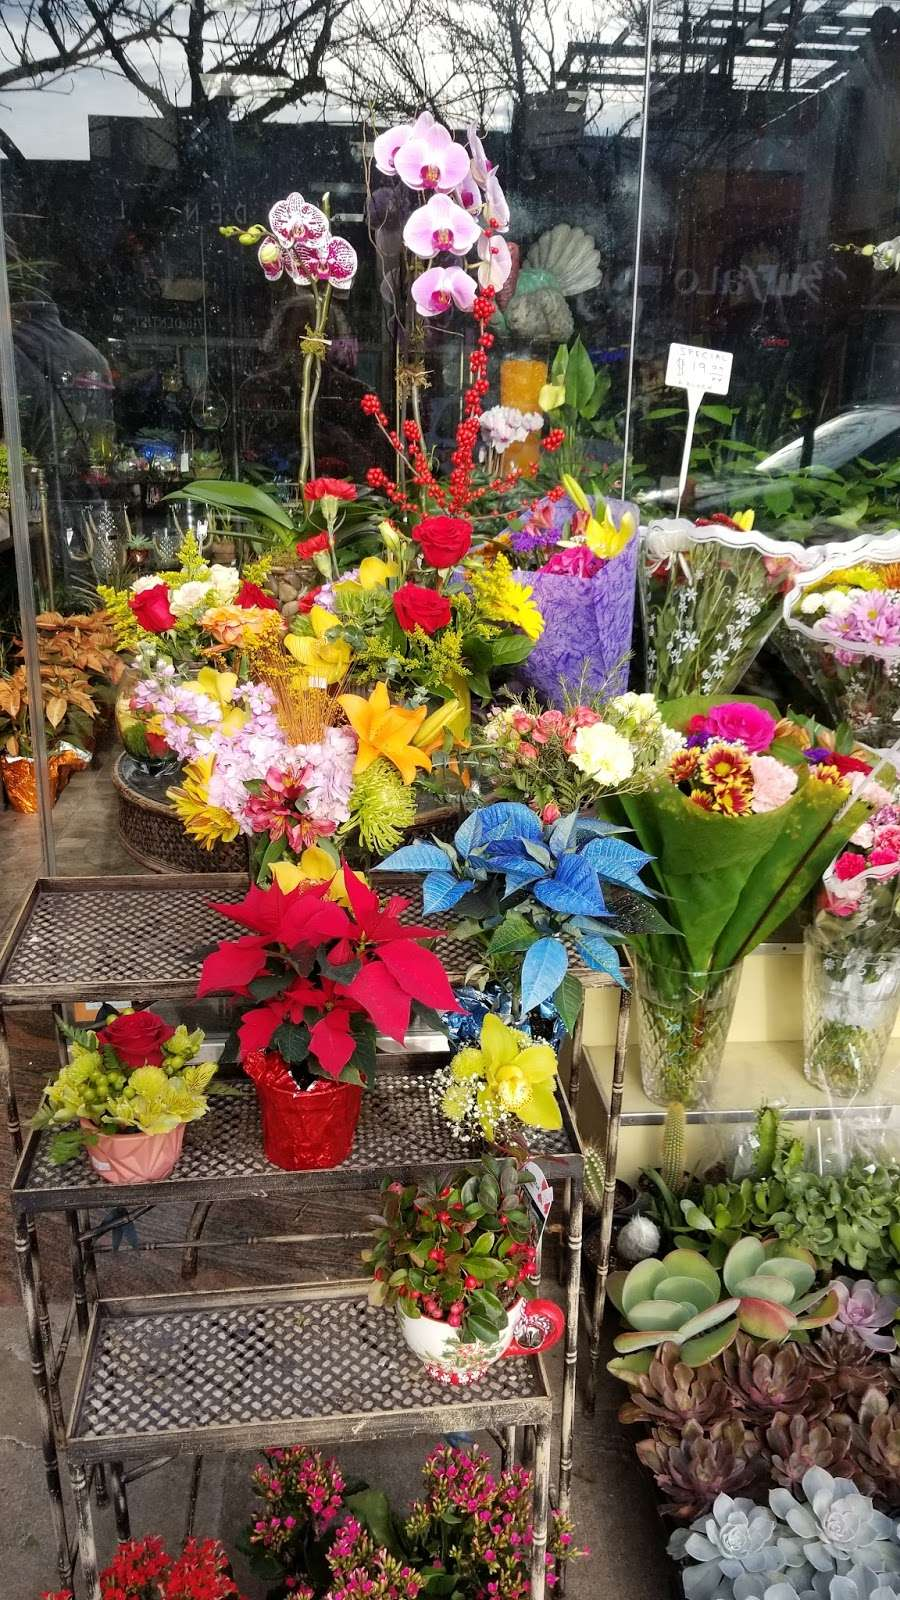 Ditmars Flower - florist  | Photo 5 of 10 | Address: 2911 Ditmars Blvd, Queens, NY 11105, USA | Phone: (718) 726-4453